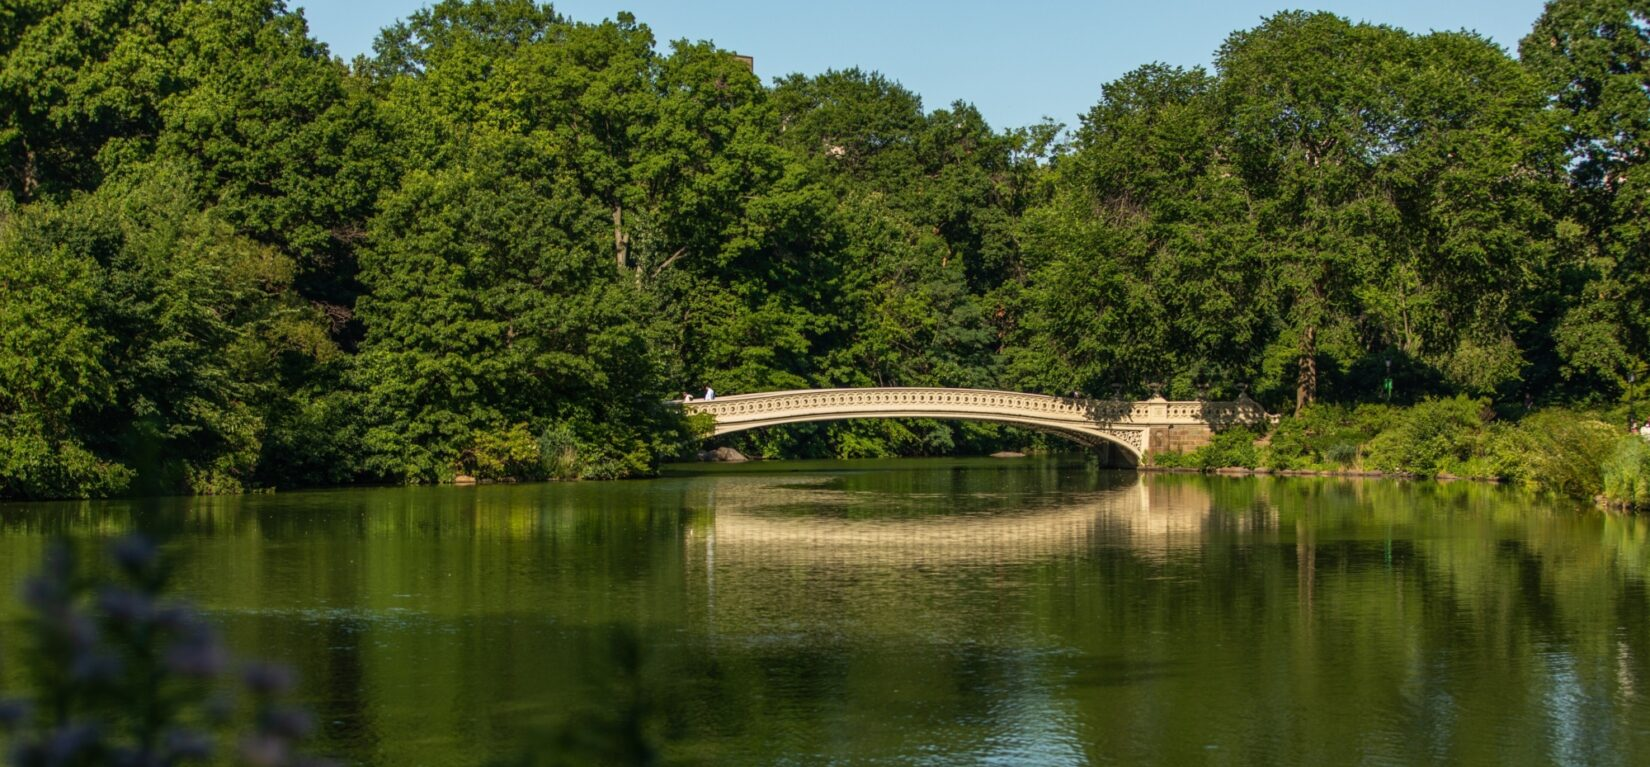 Bow Bridge in summer, its span reflected in the water below